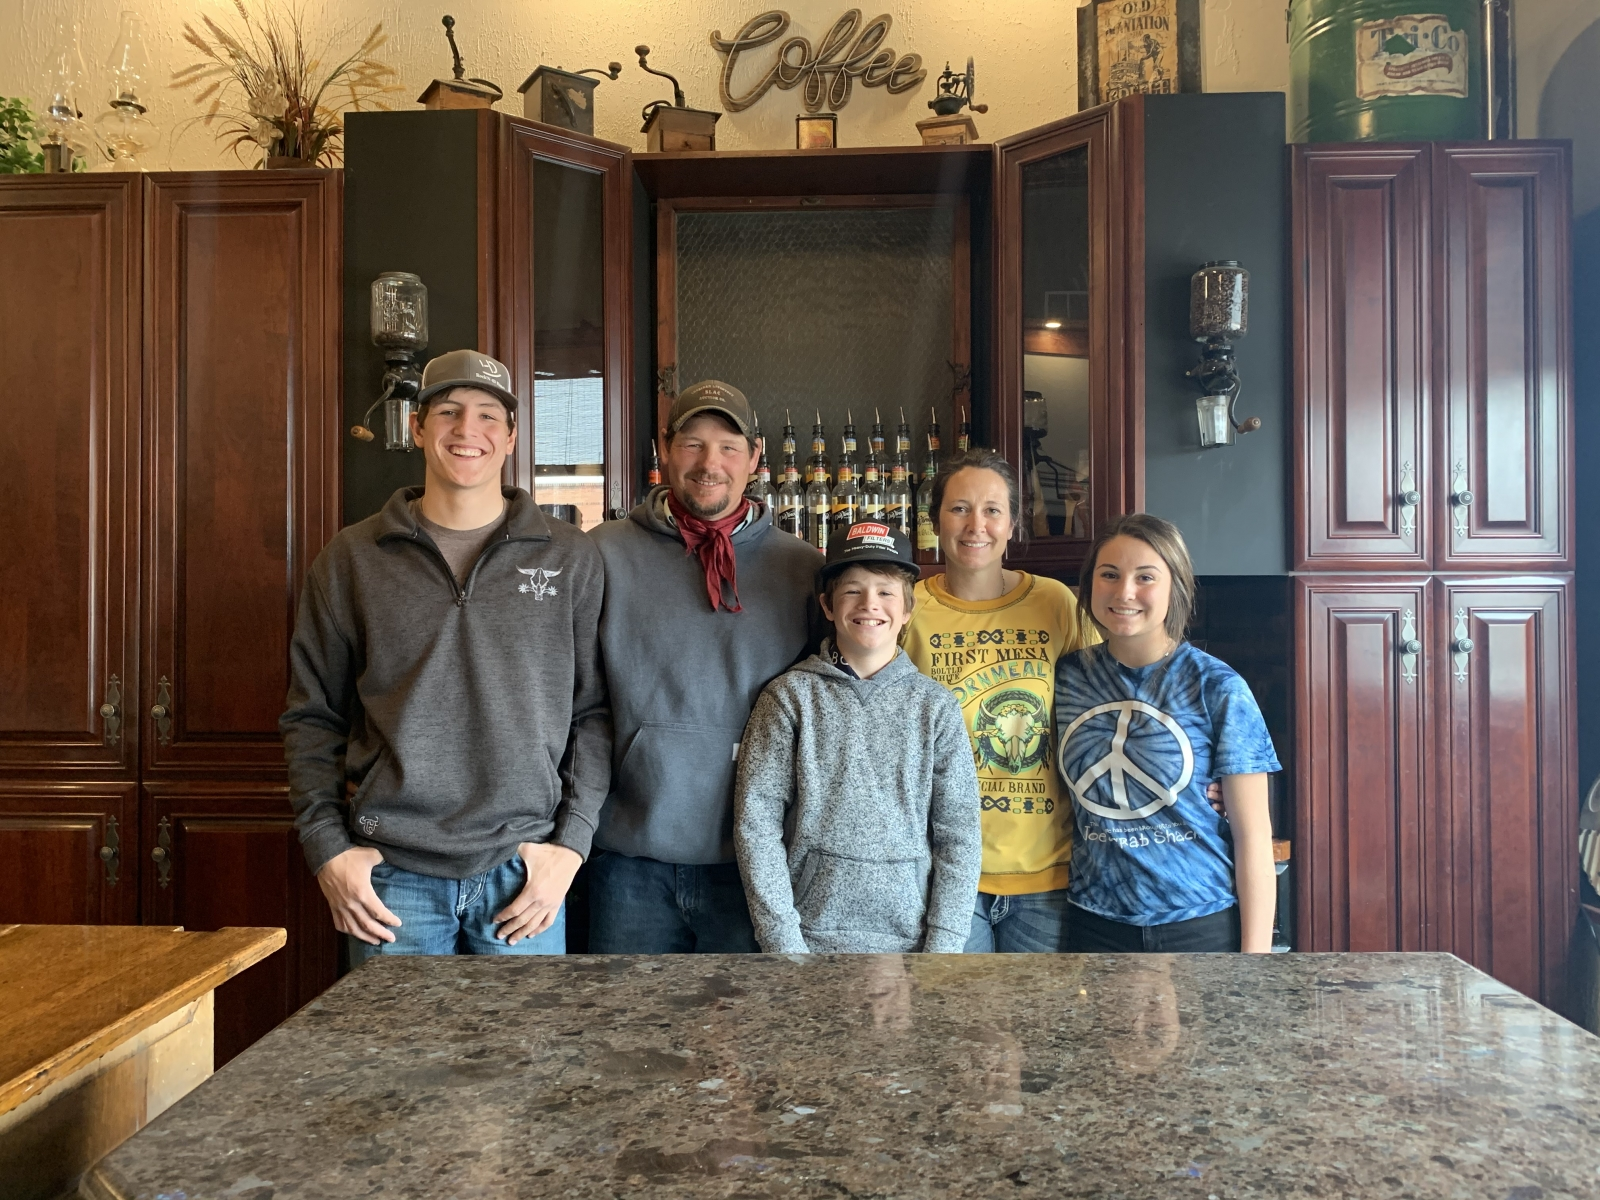 Pictured left to right: Kaden Vincent, Clint Vincent, Kyler Vincent, Emilee Hinn, and Sissy Hinn.